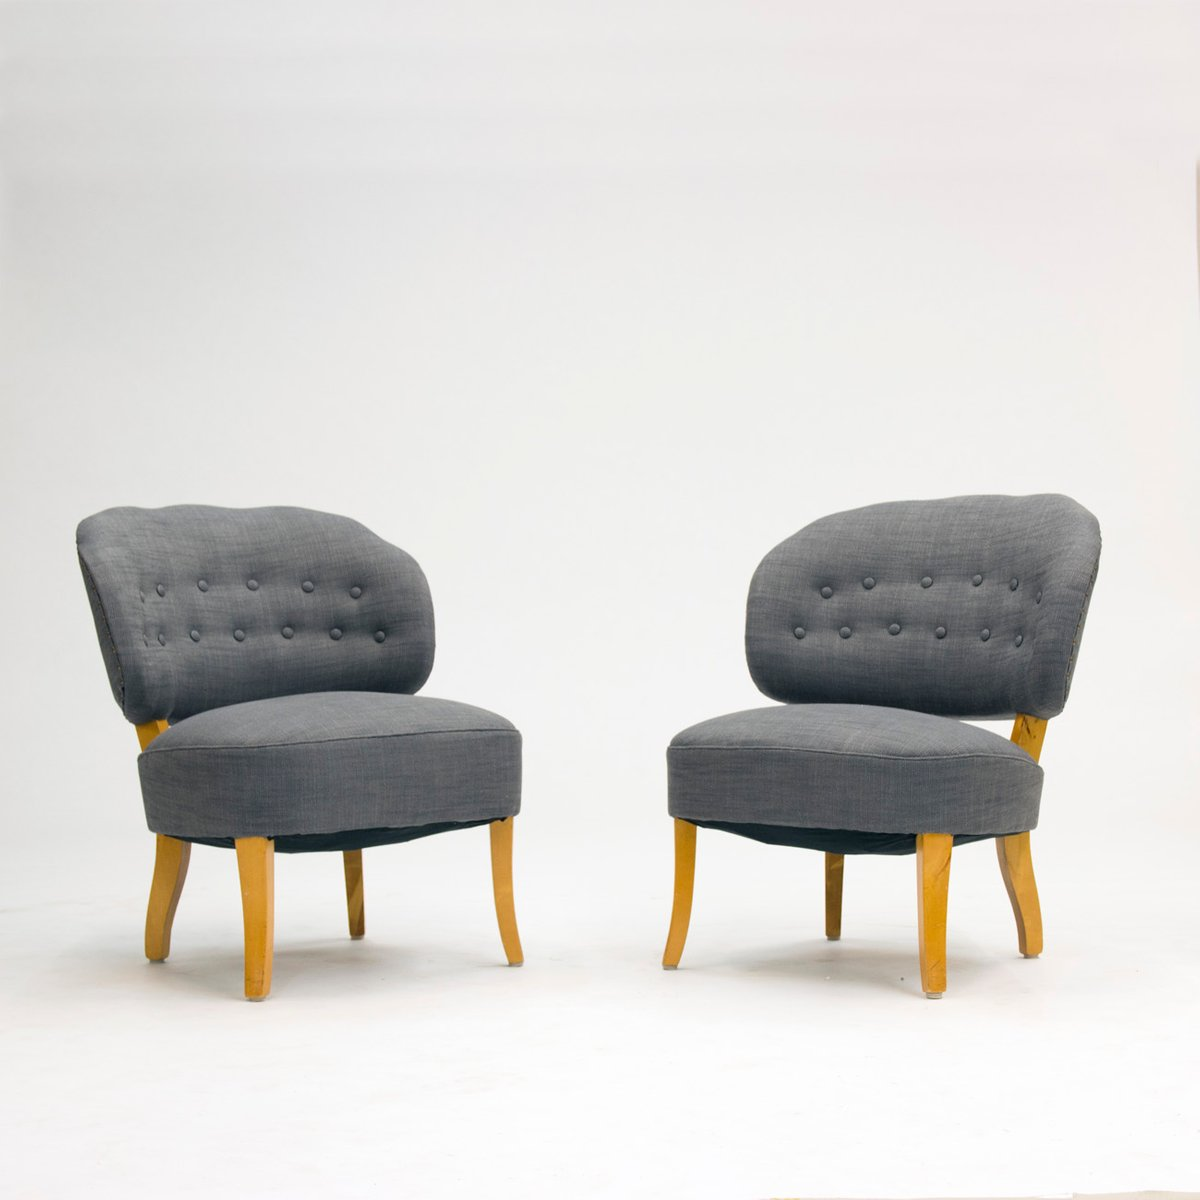 old berlin easy chairs by carl malmsten 1950s set of 2. Black Bedroom Furniture Sets. Home Design Ideas